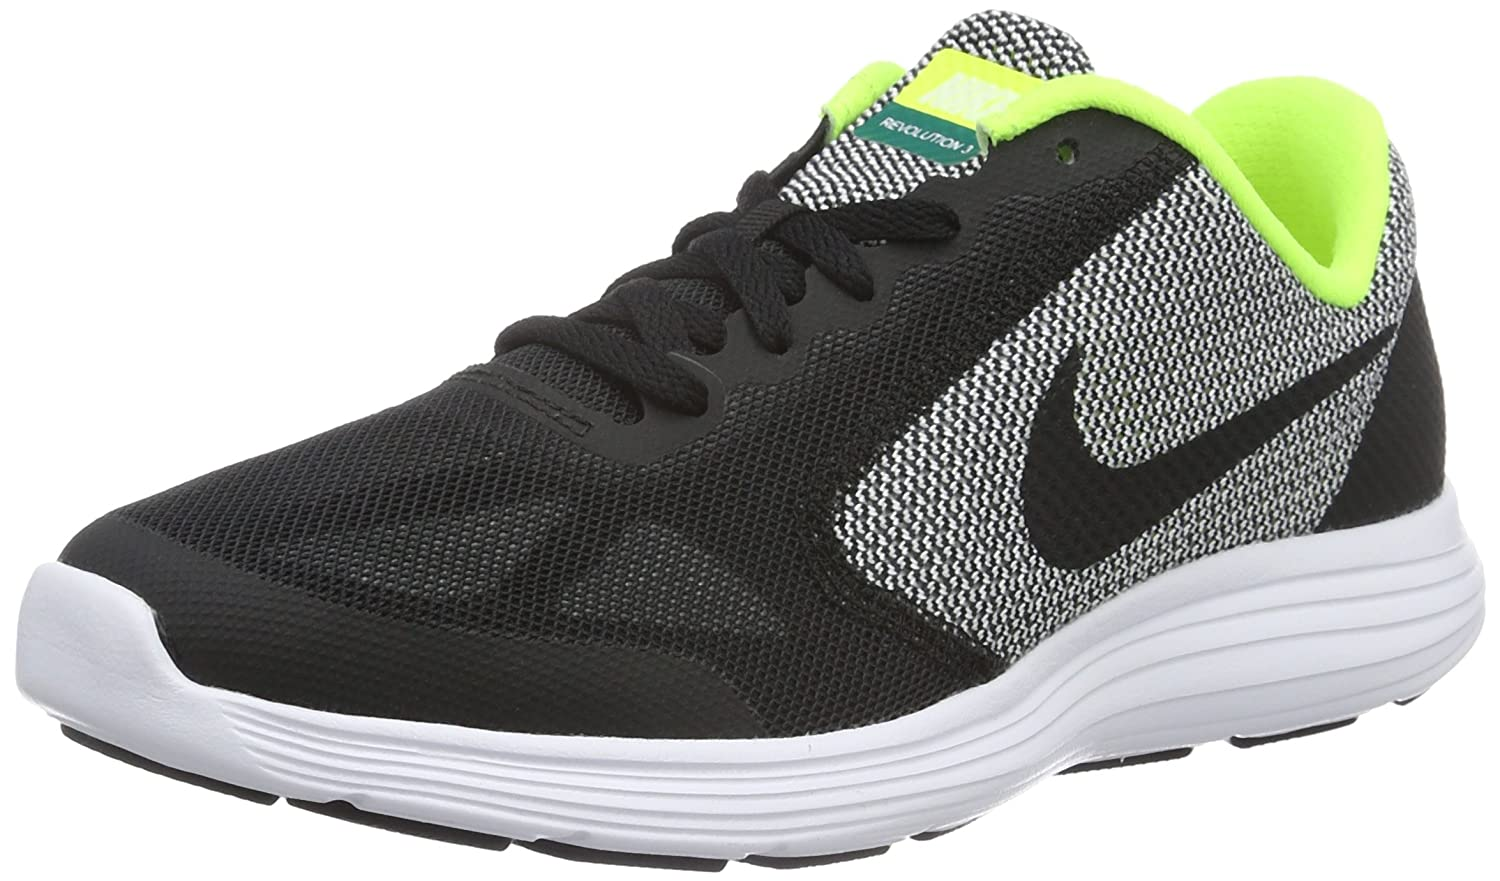 NIKE ' Revolution 3 (GS) Running Shoes B00AV7VGBY 4 M US Big Kid|Black/Black/White/Volt